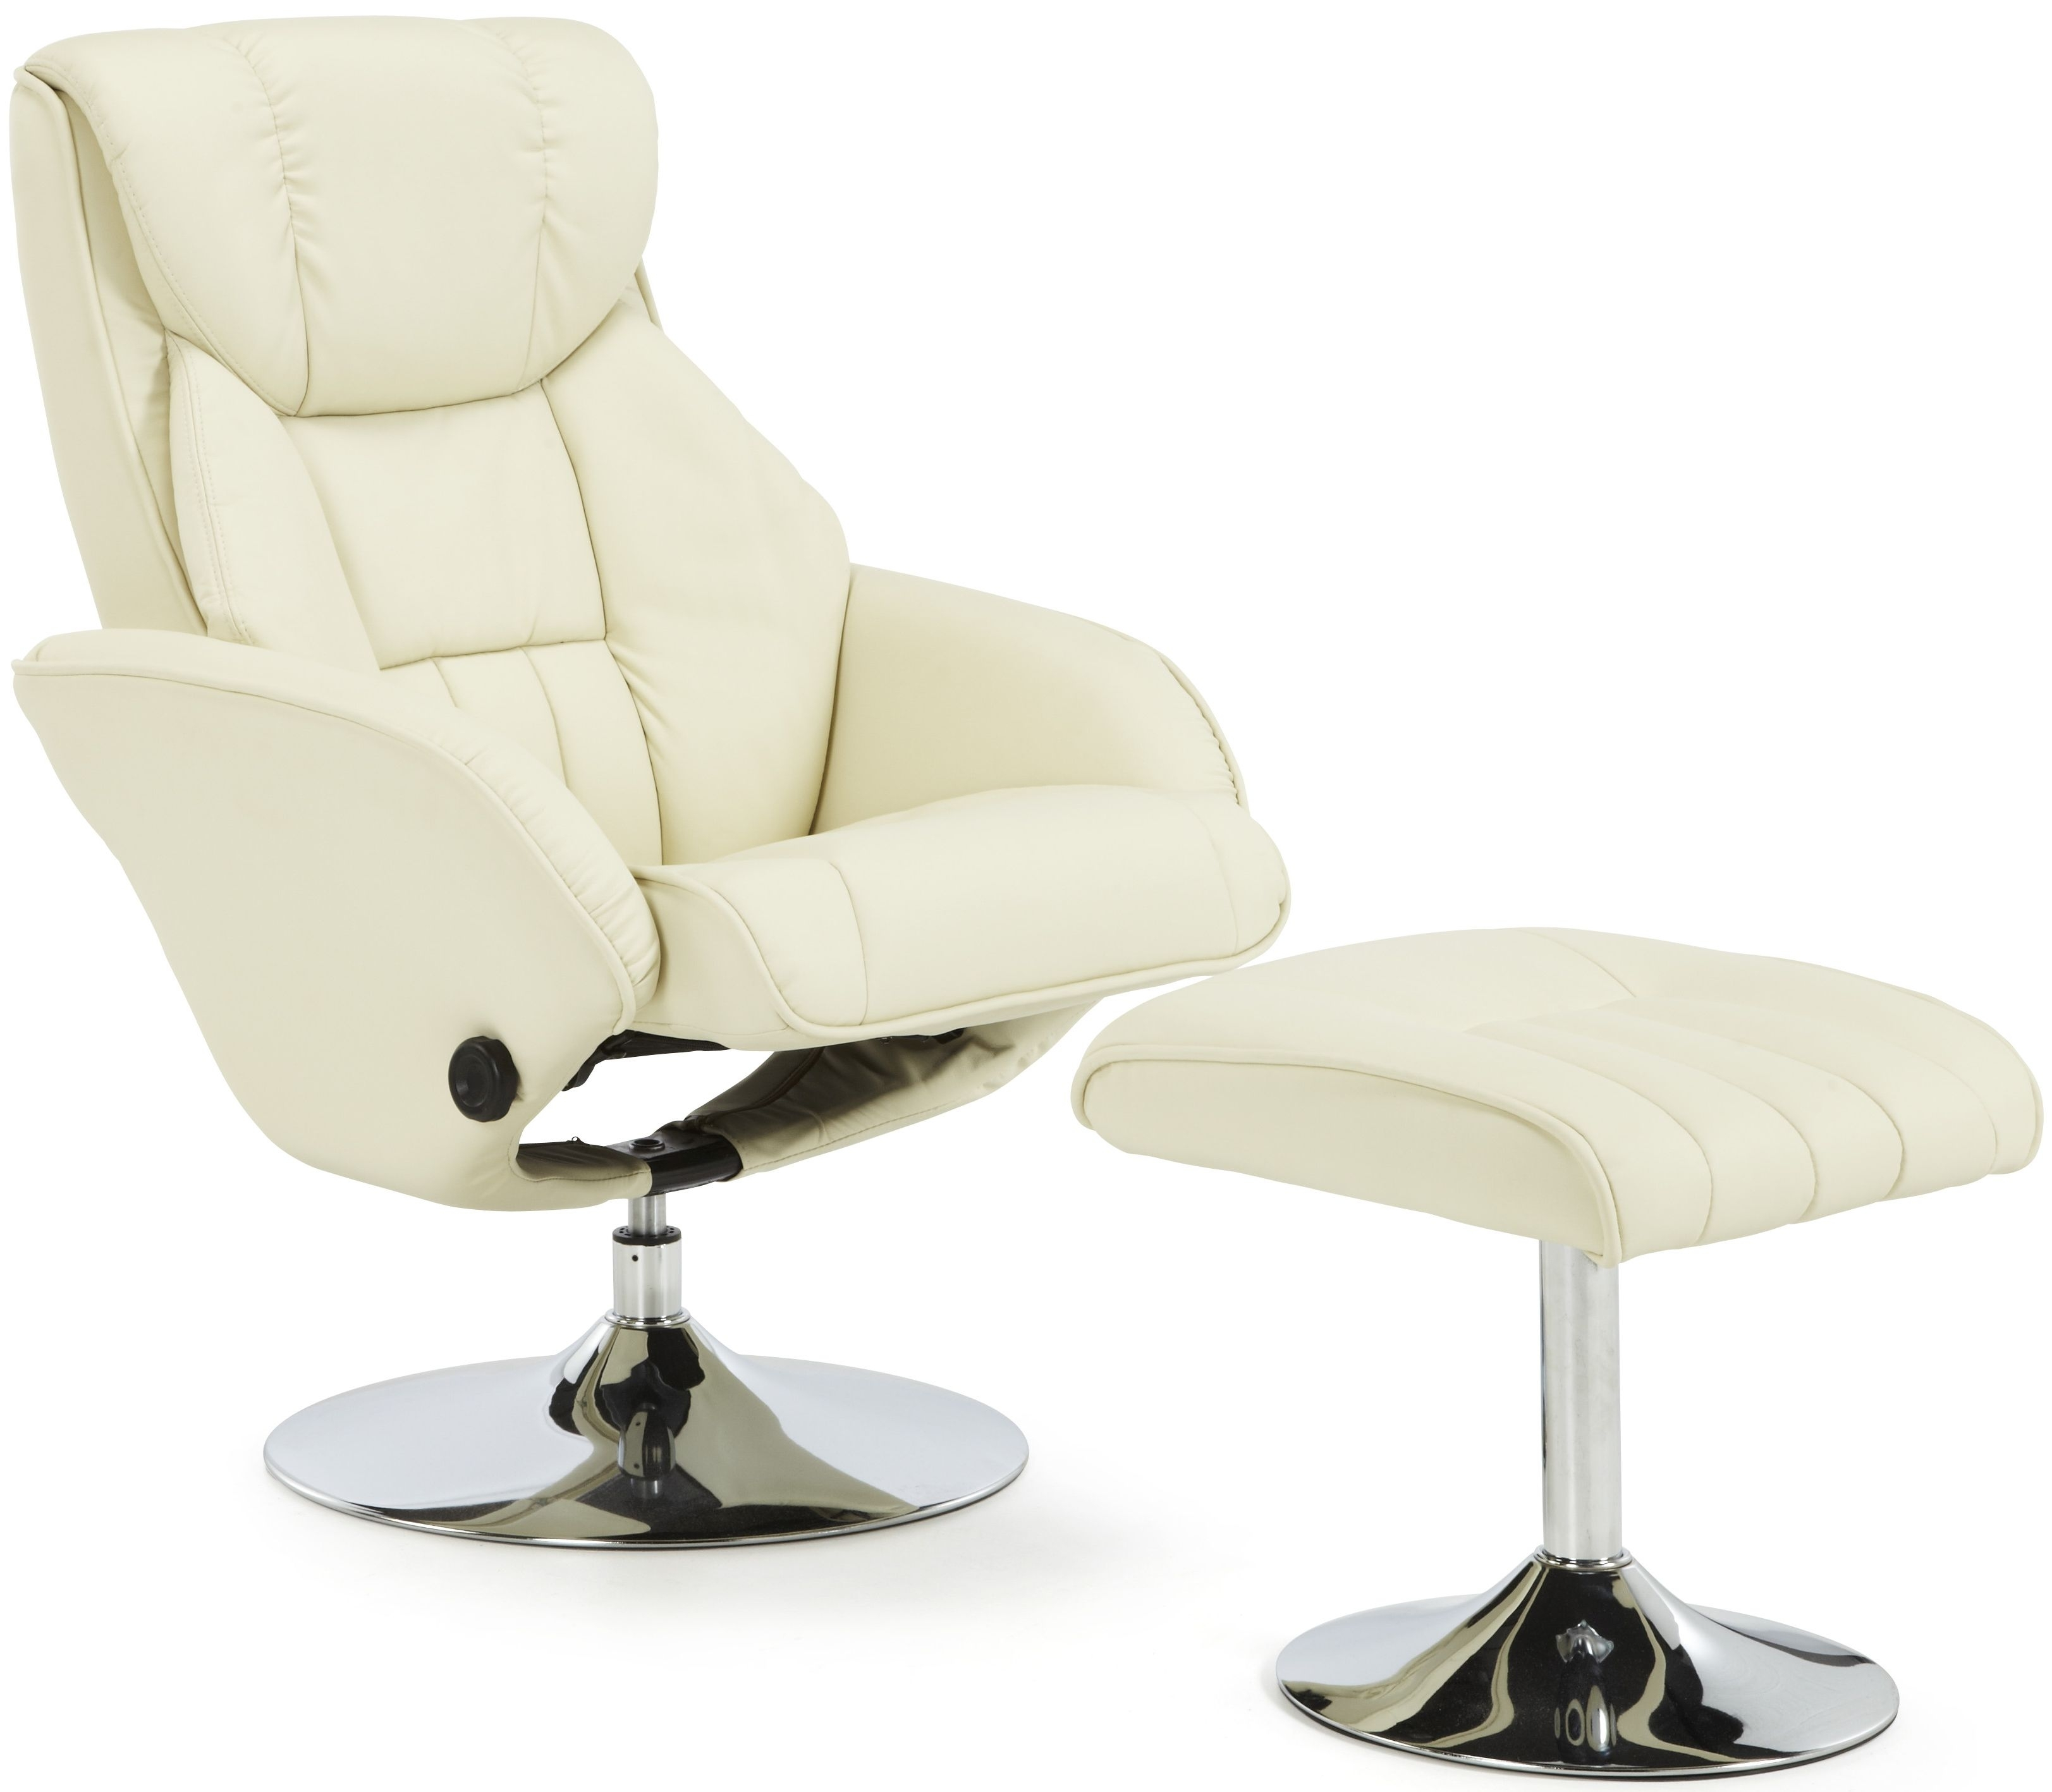 Serene Larvik Cream Faux Leather Recliner Chair